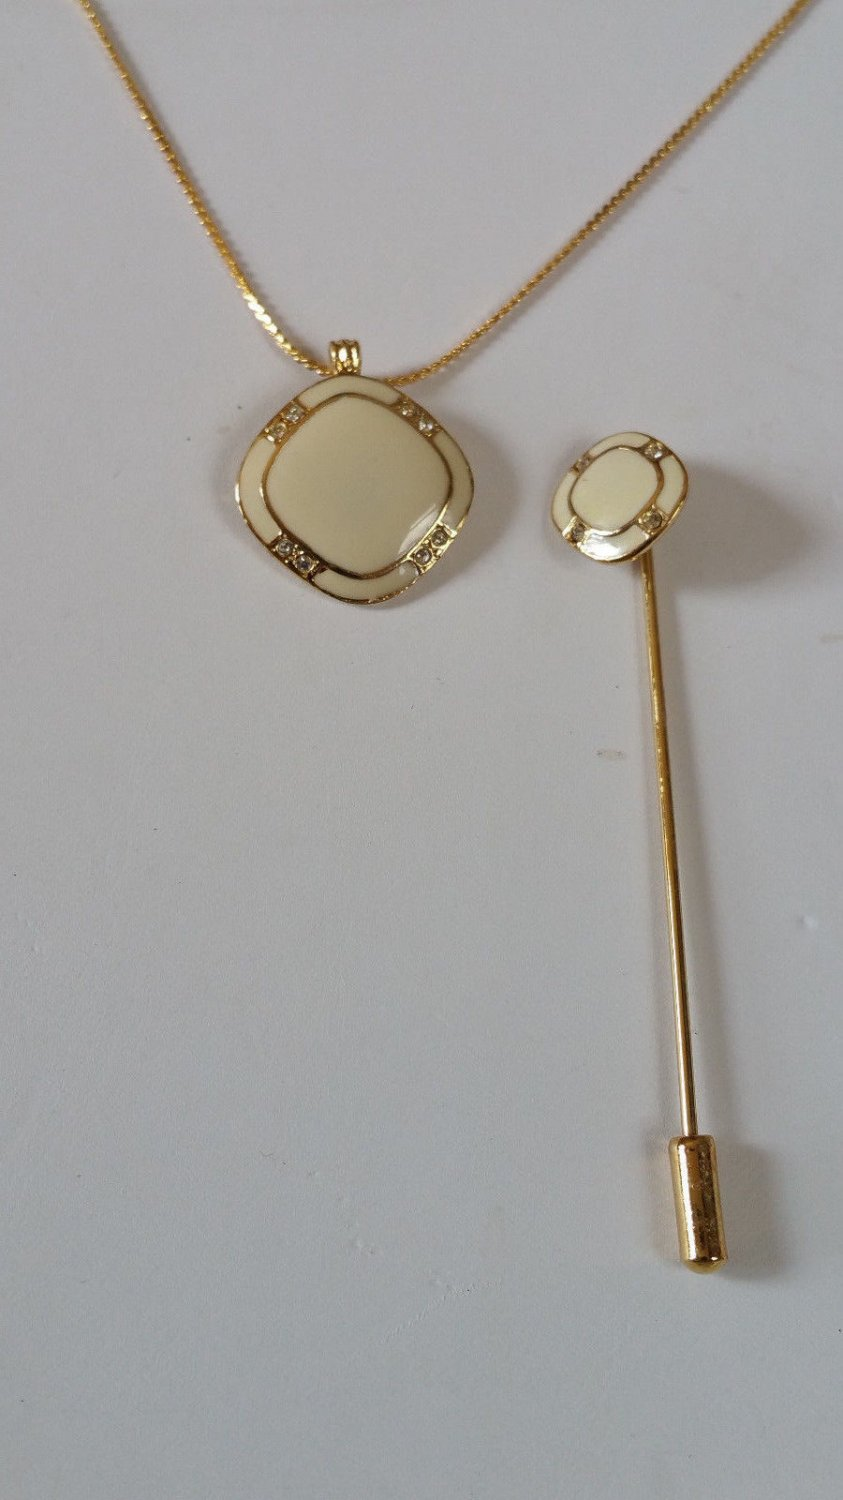 Vintage stick pin and necklace white enamel and rhinestone Gold tone